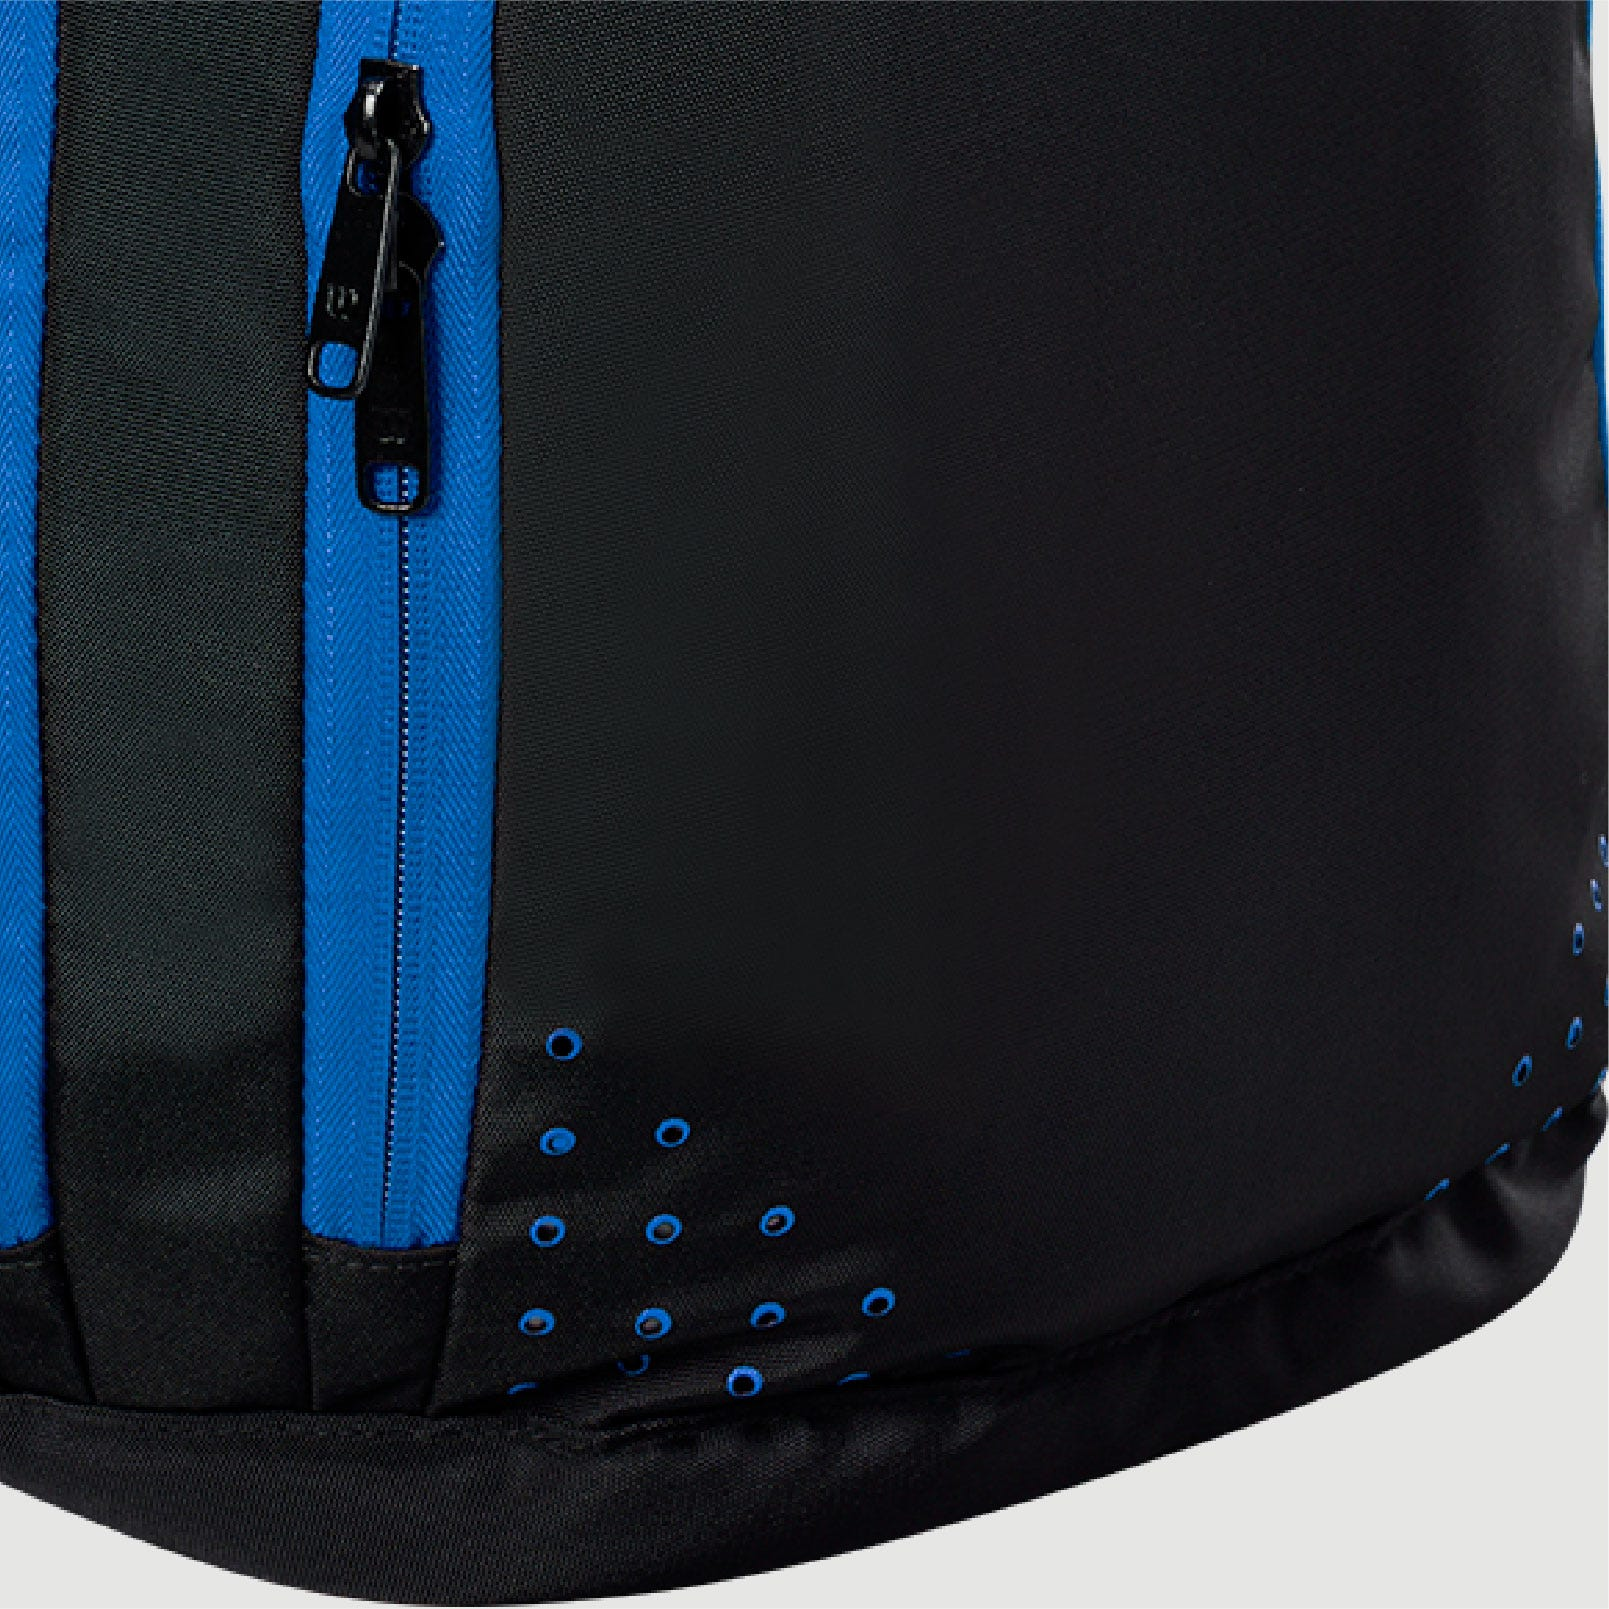 FRONT AND SIDE PERFORATION